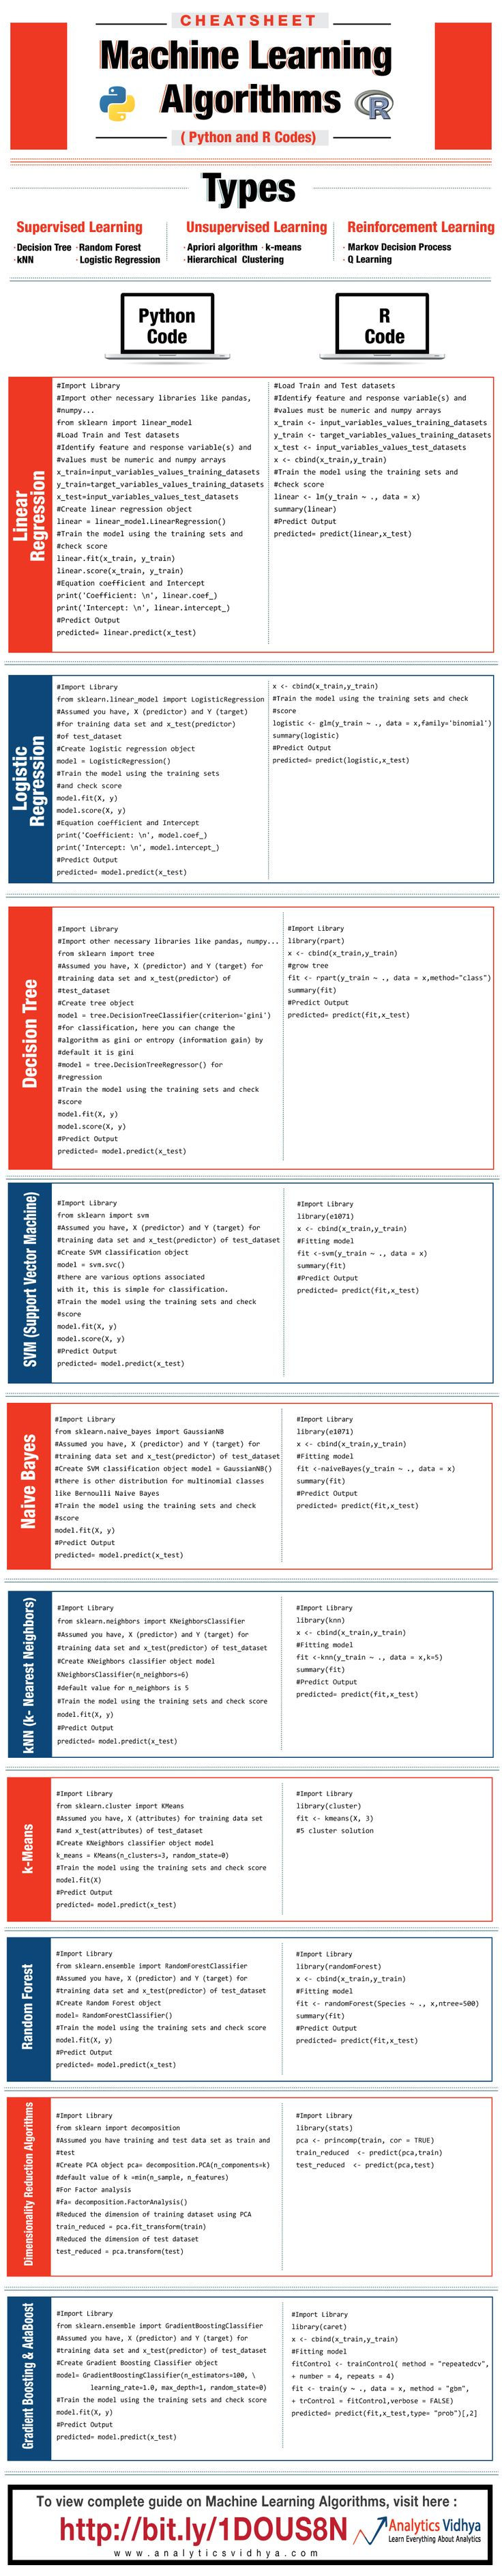 Cheat Sheet: machine learning algorithms, data science both for R and Python